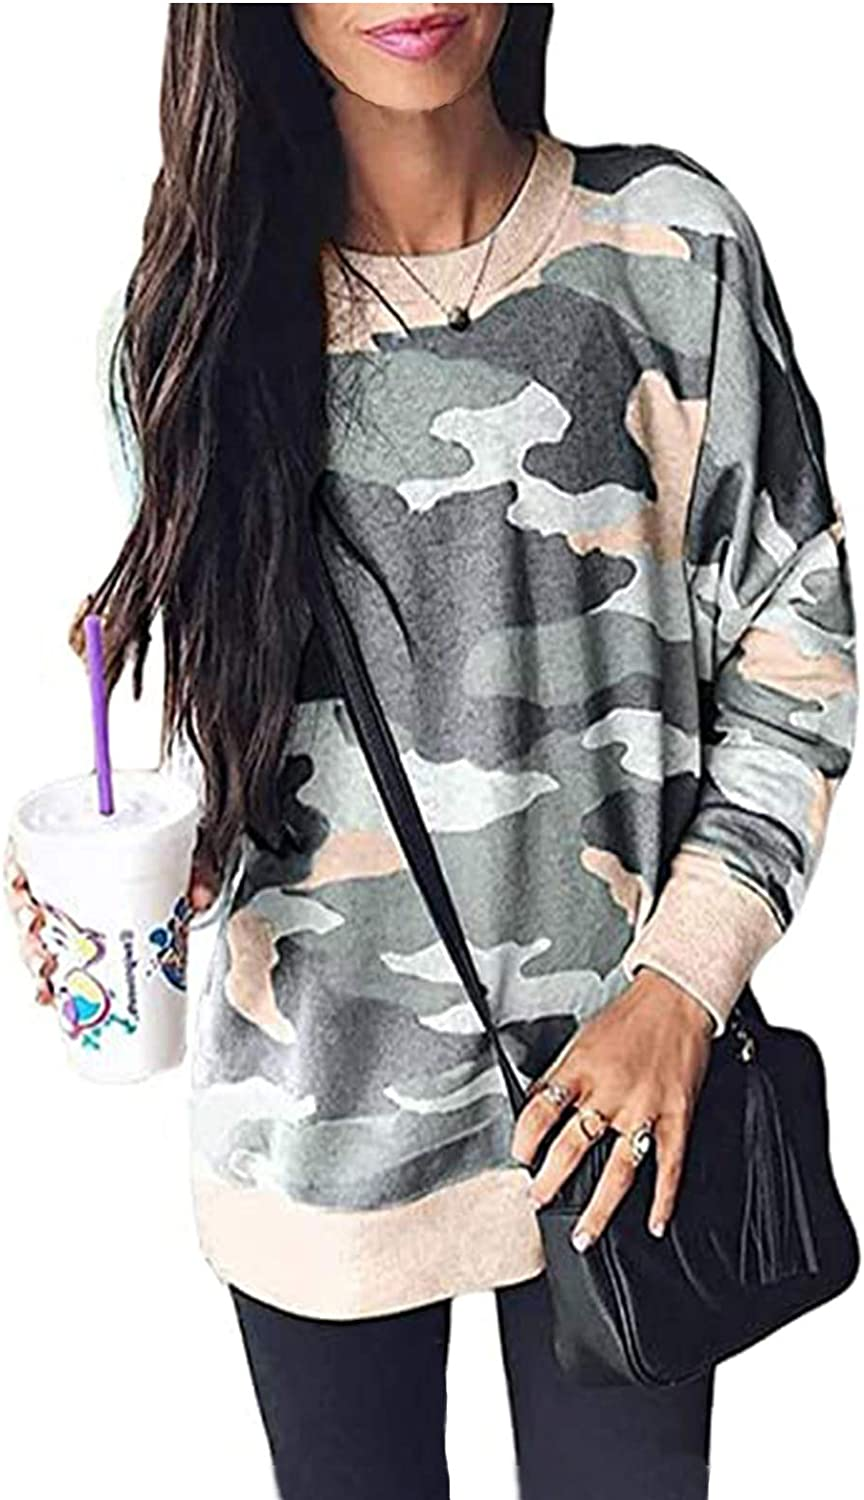 LuckyMore Women's Tie Dye Sweatshirt Casual Long Sleeve Loose Leopard Pullover Tops Shirts